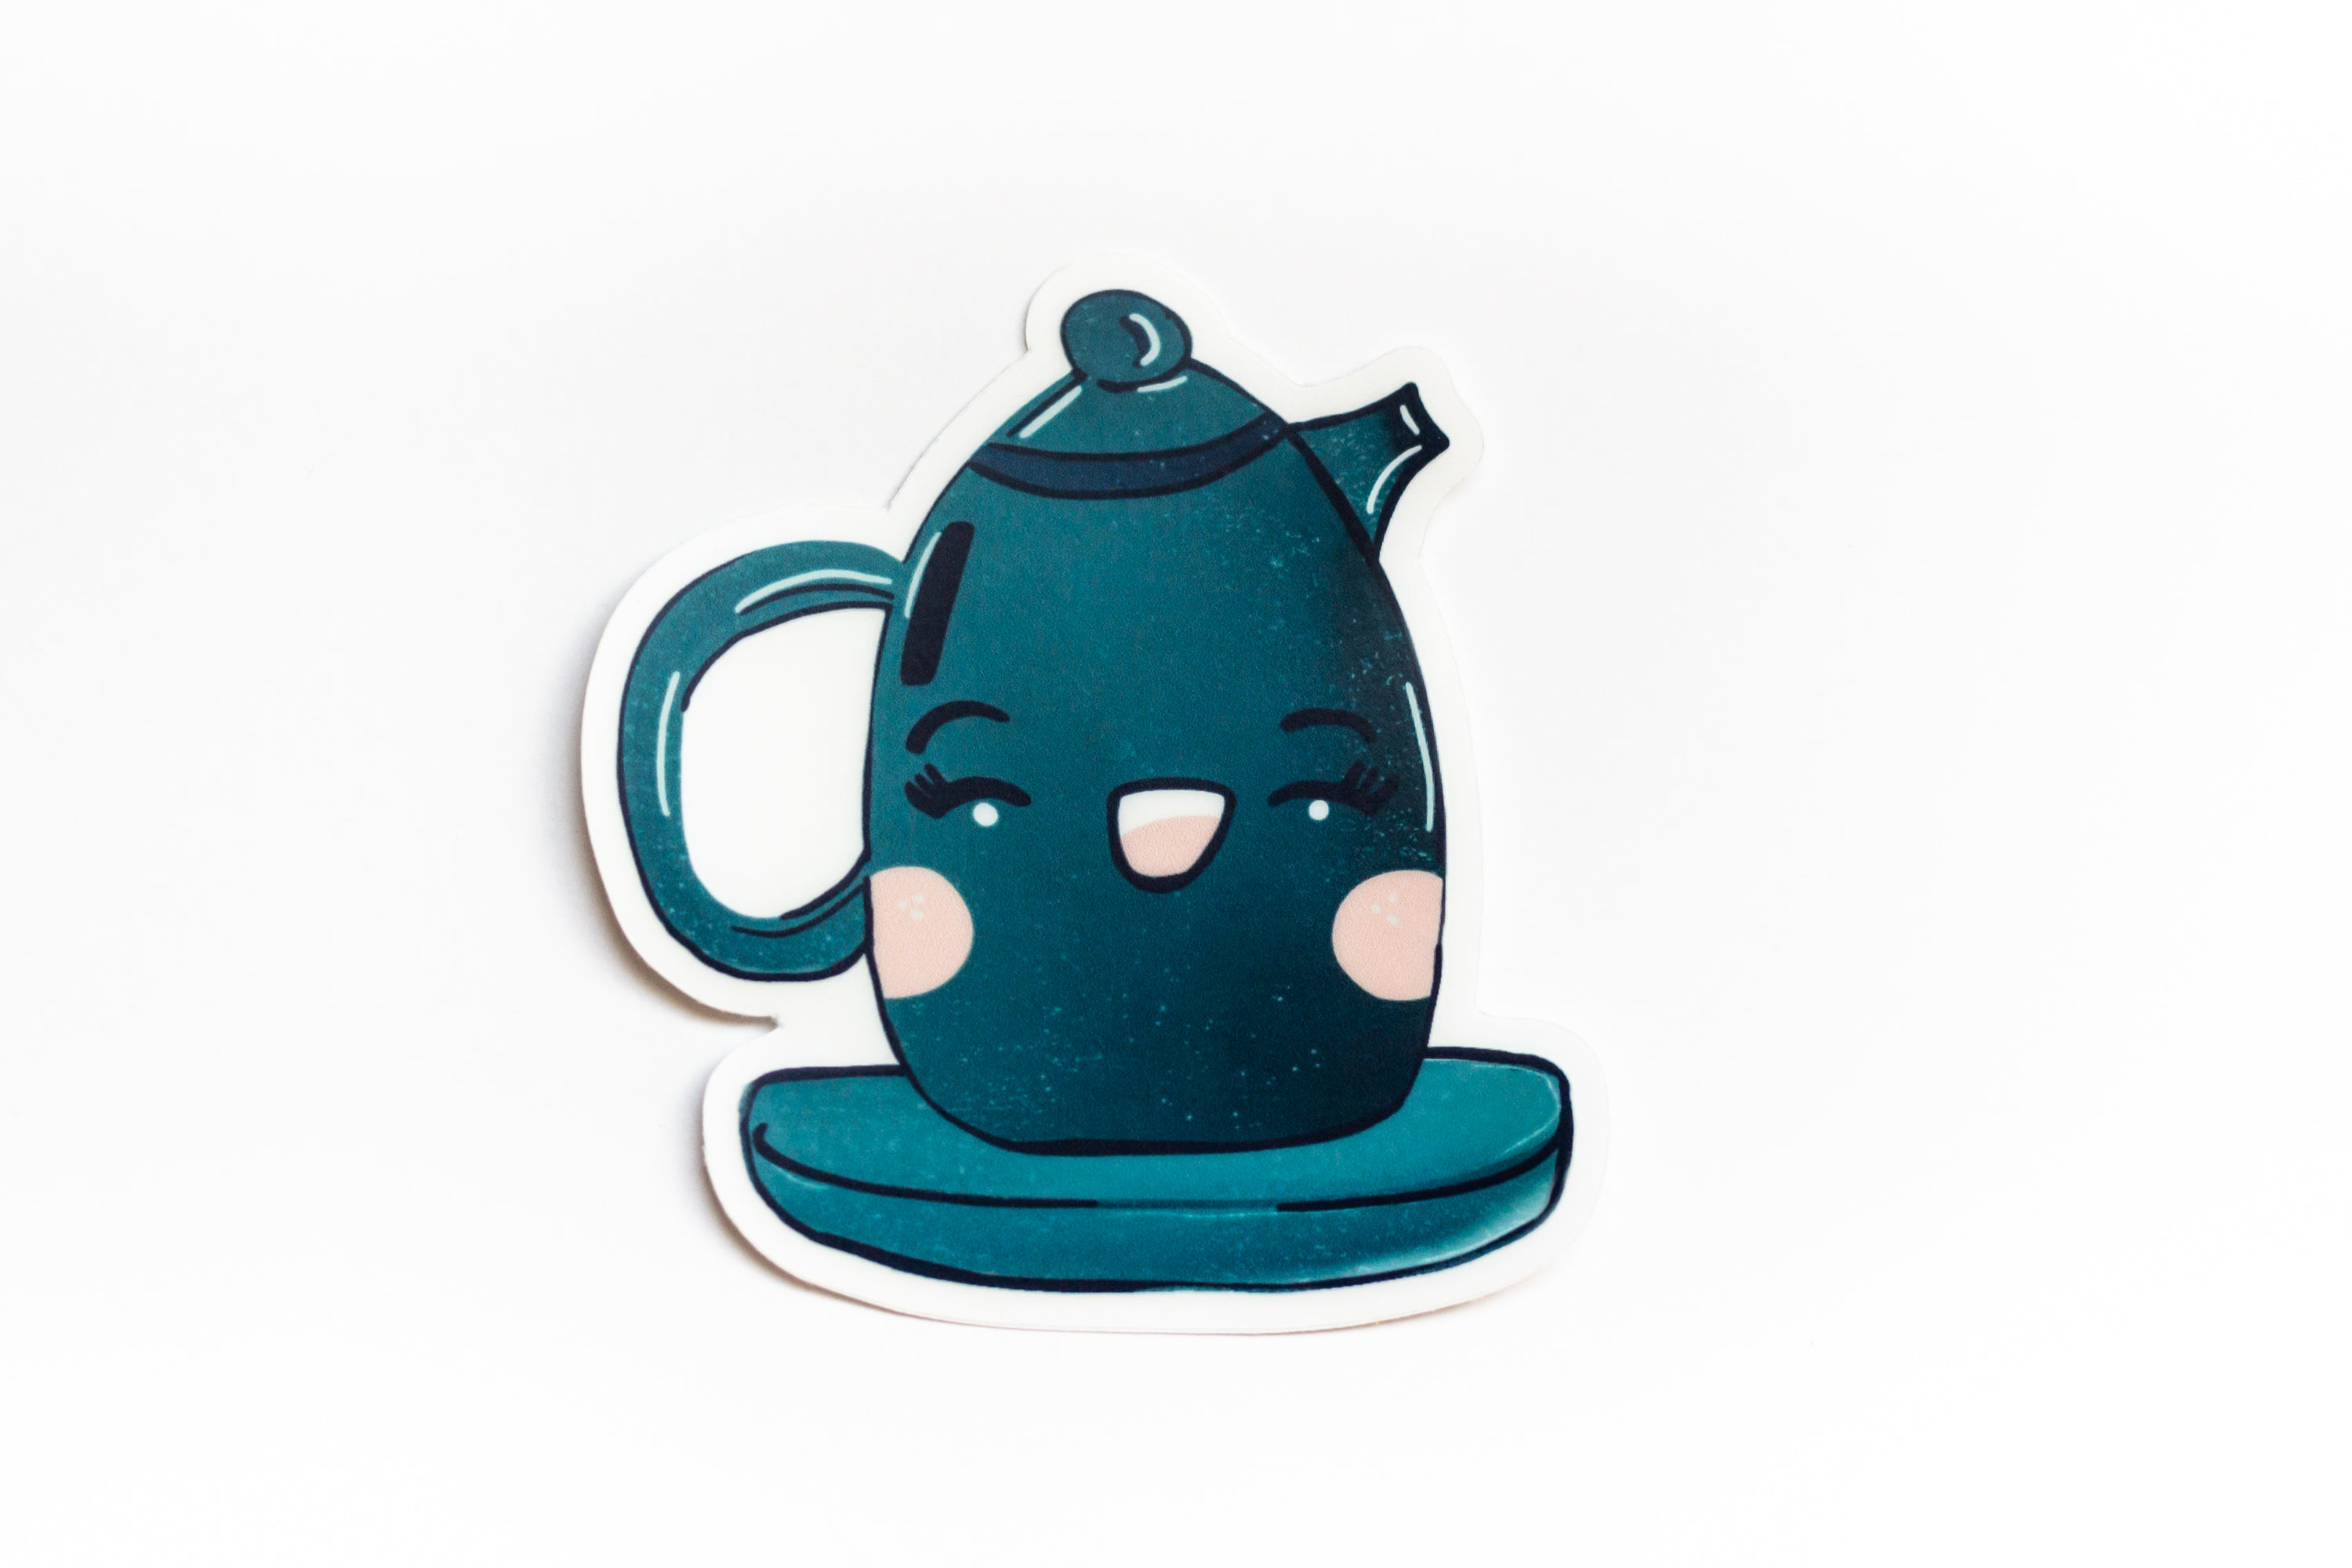 Teapot - Cottagecore Aesthetic Sticker - Waterproof Transparent Sticker